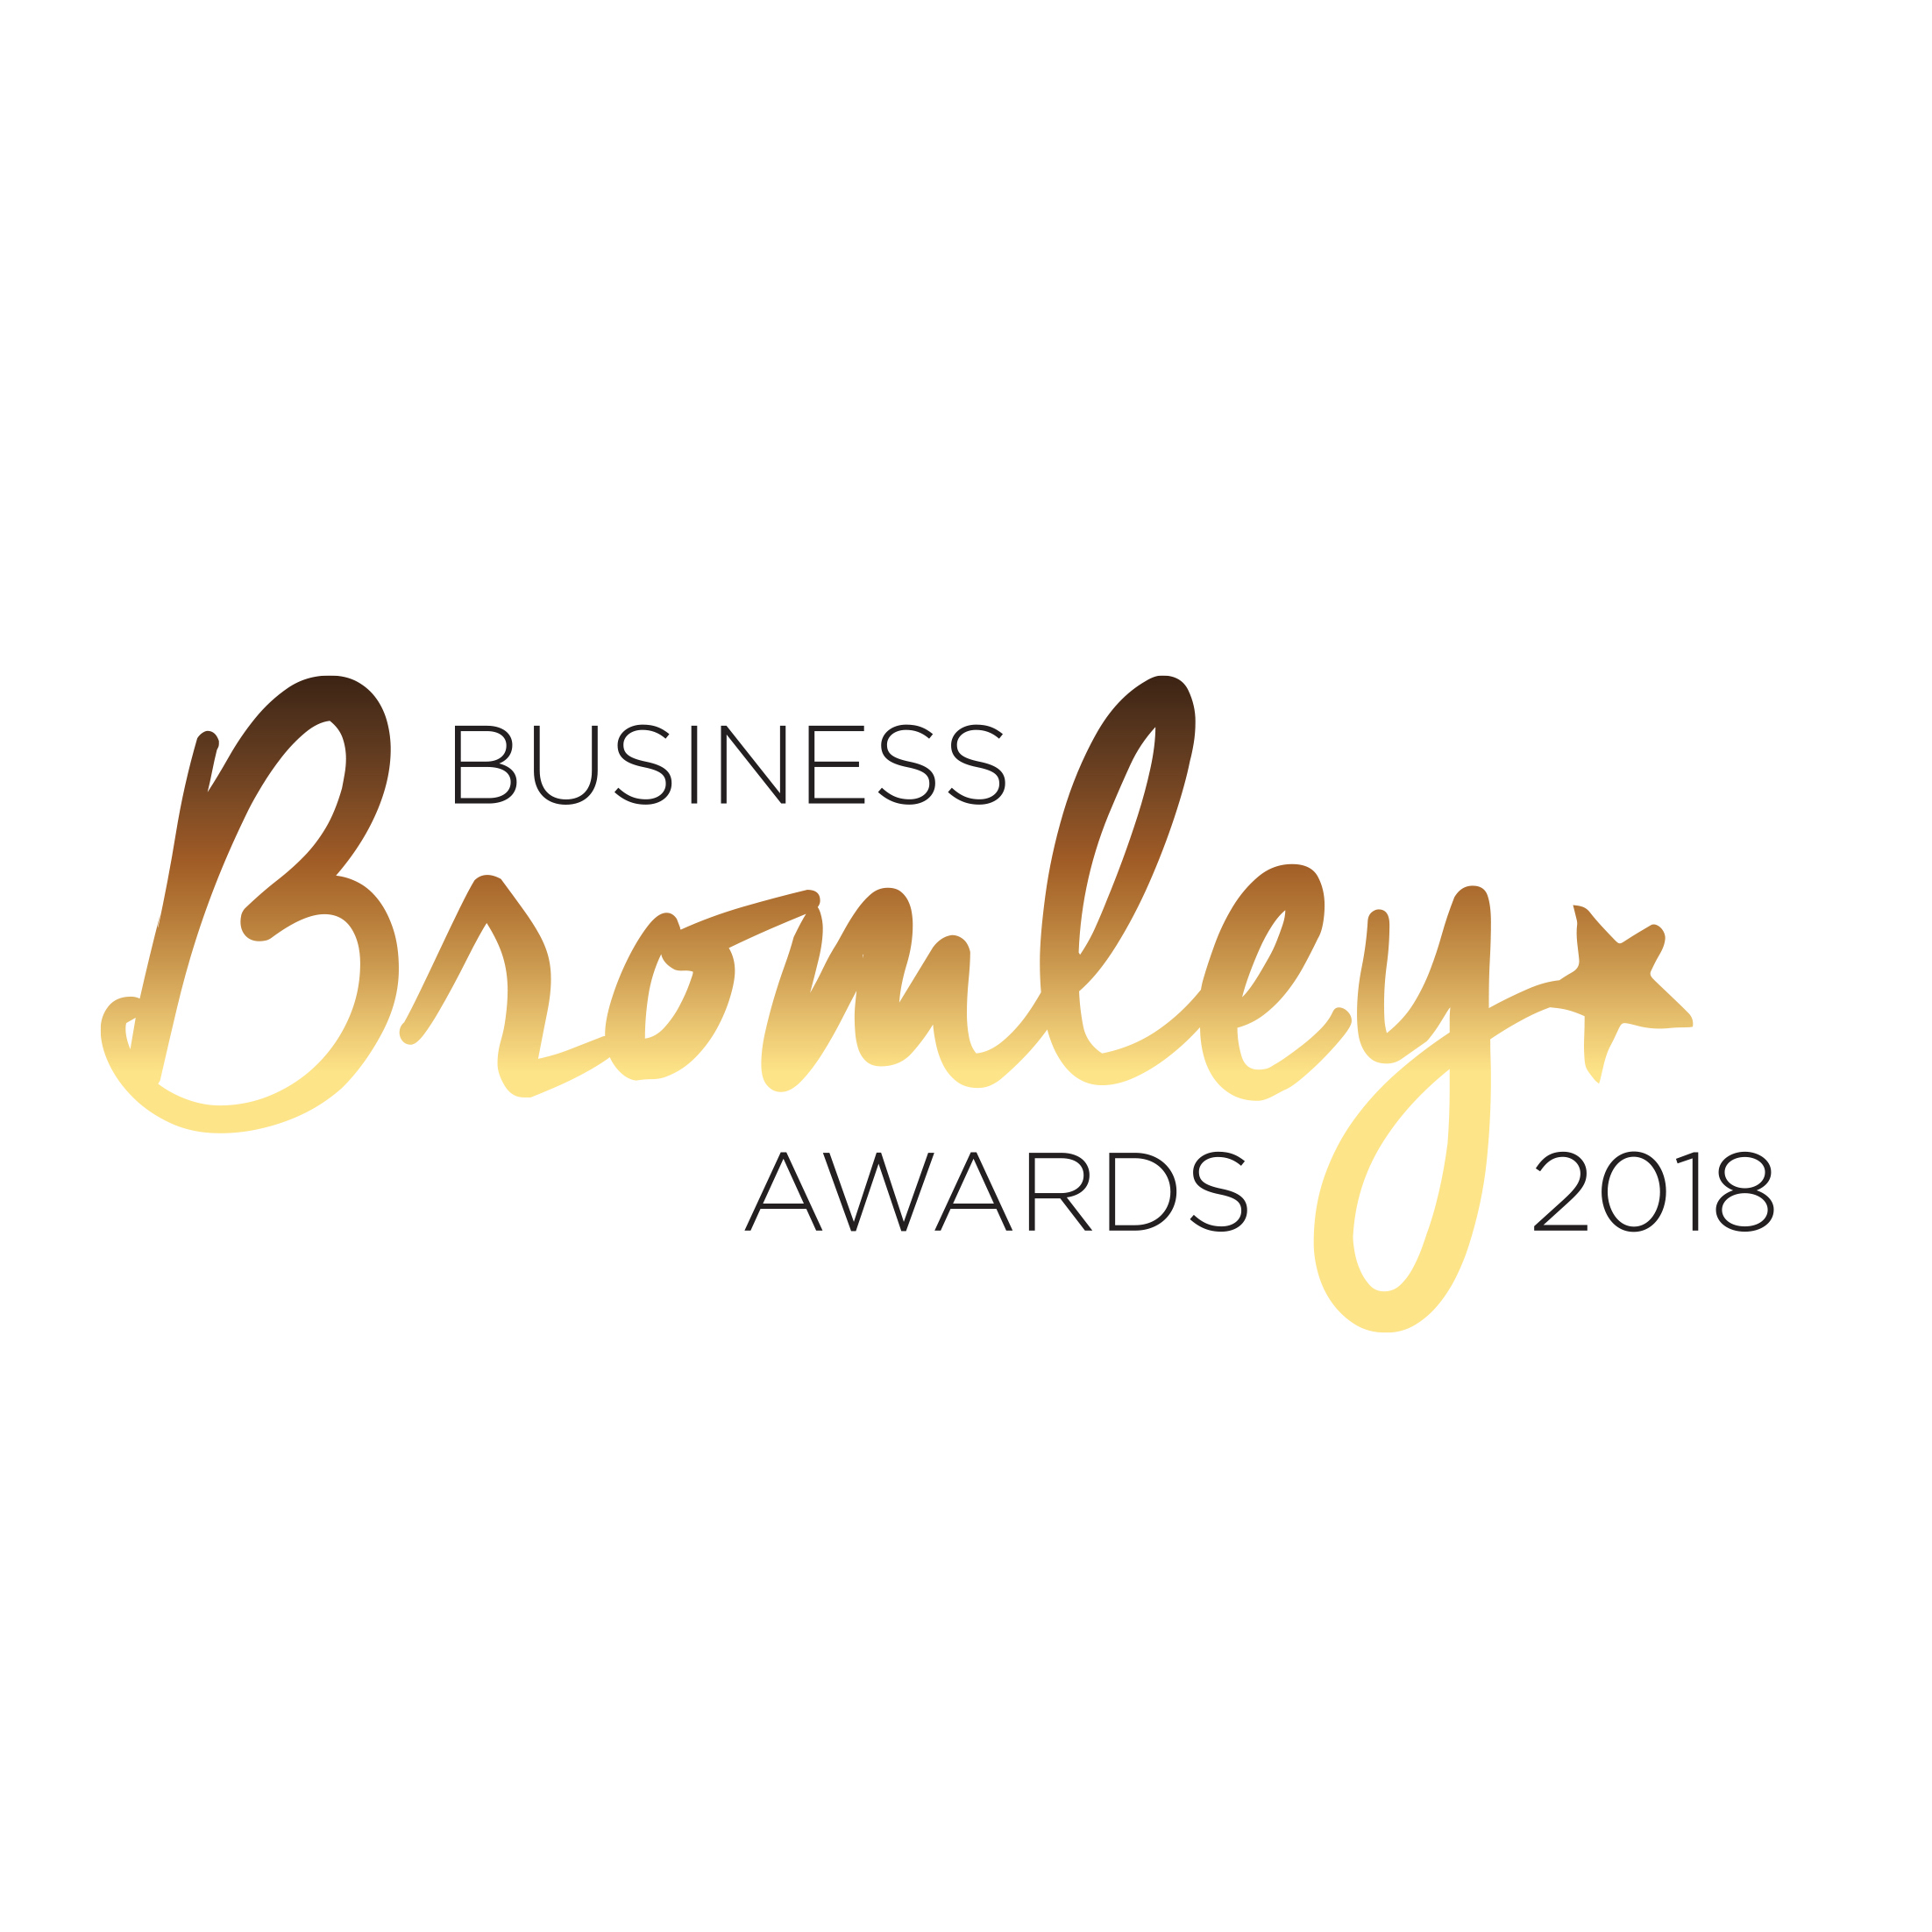 Bromley Business Awards Logo 2018 Colour SQ.jpg